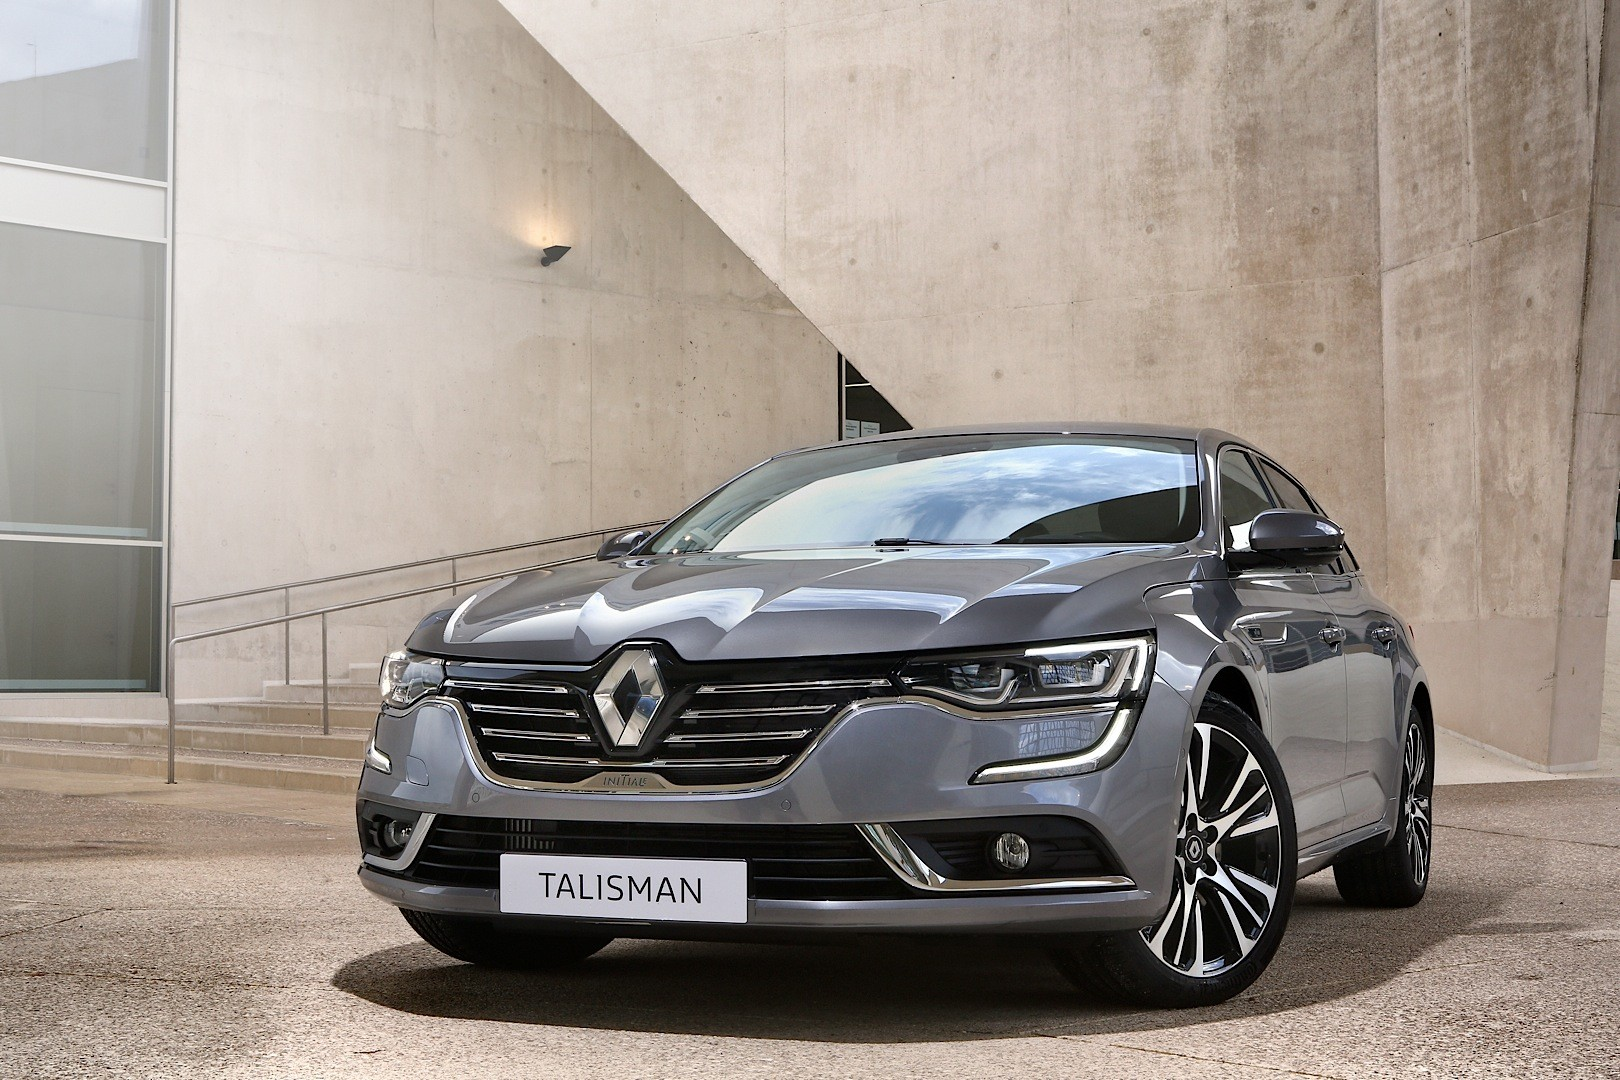 renault talisman pricing leaked latest photos show initiale paris trim autoevolution. Black Bedroom Furniture Sets. Home Design Ideas